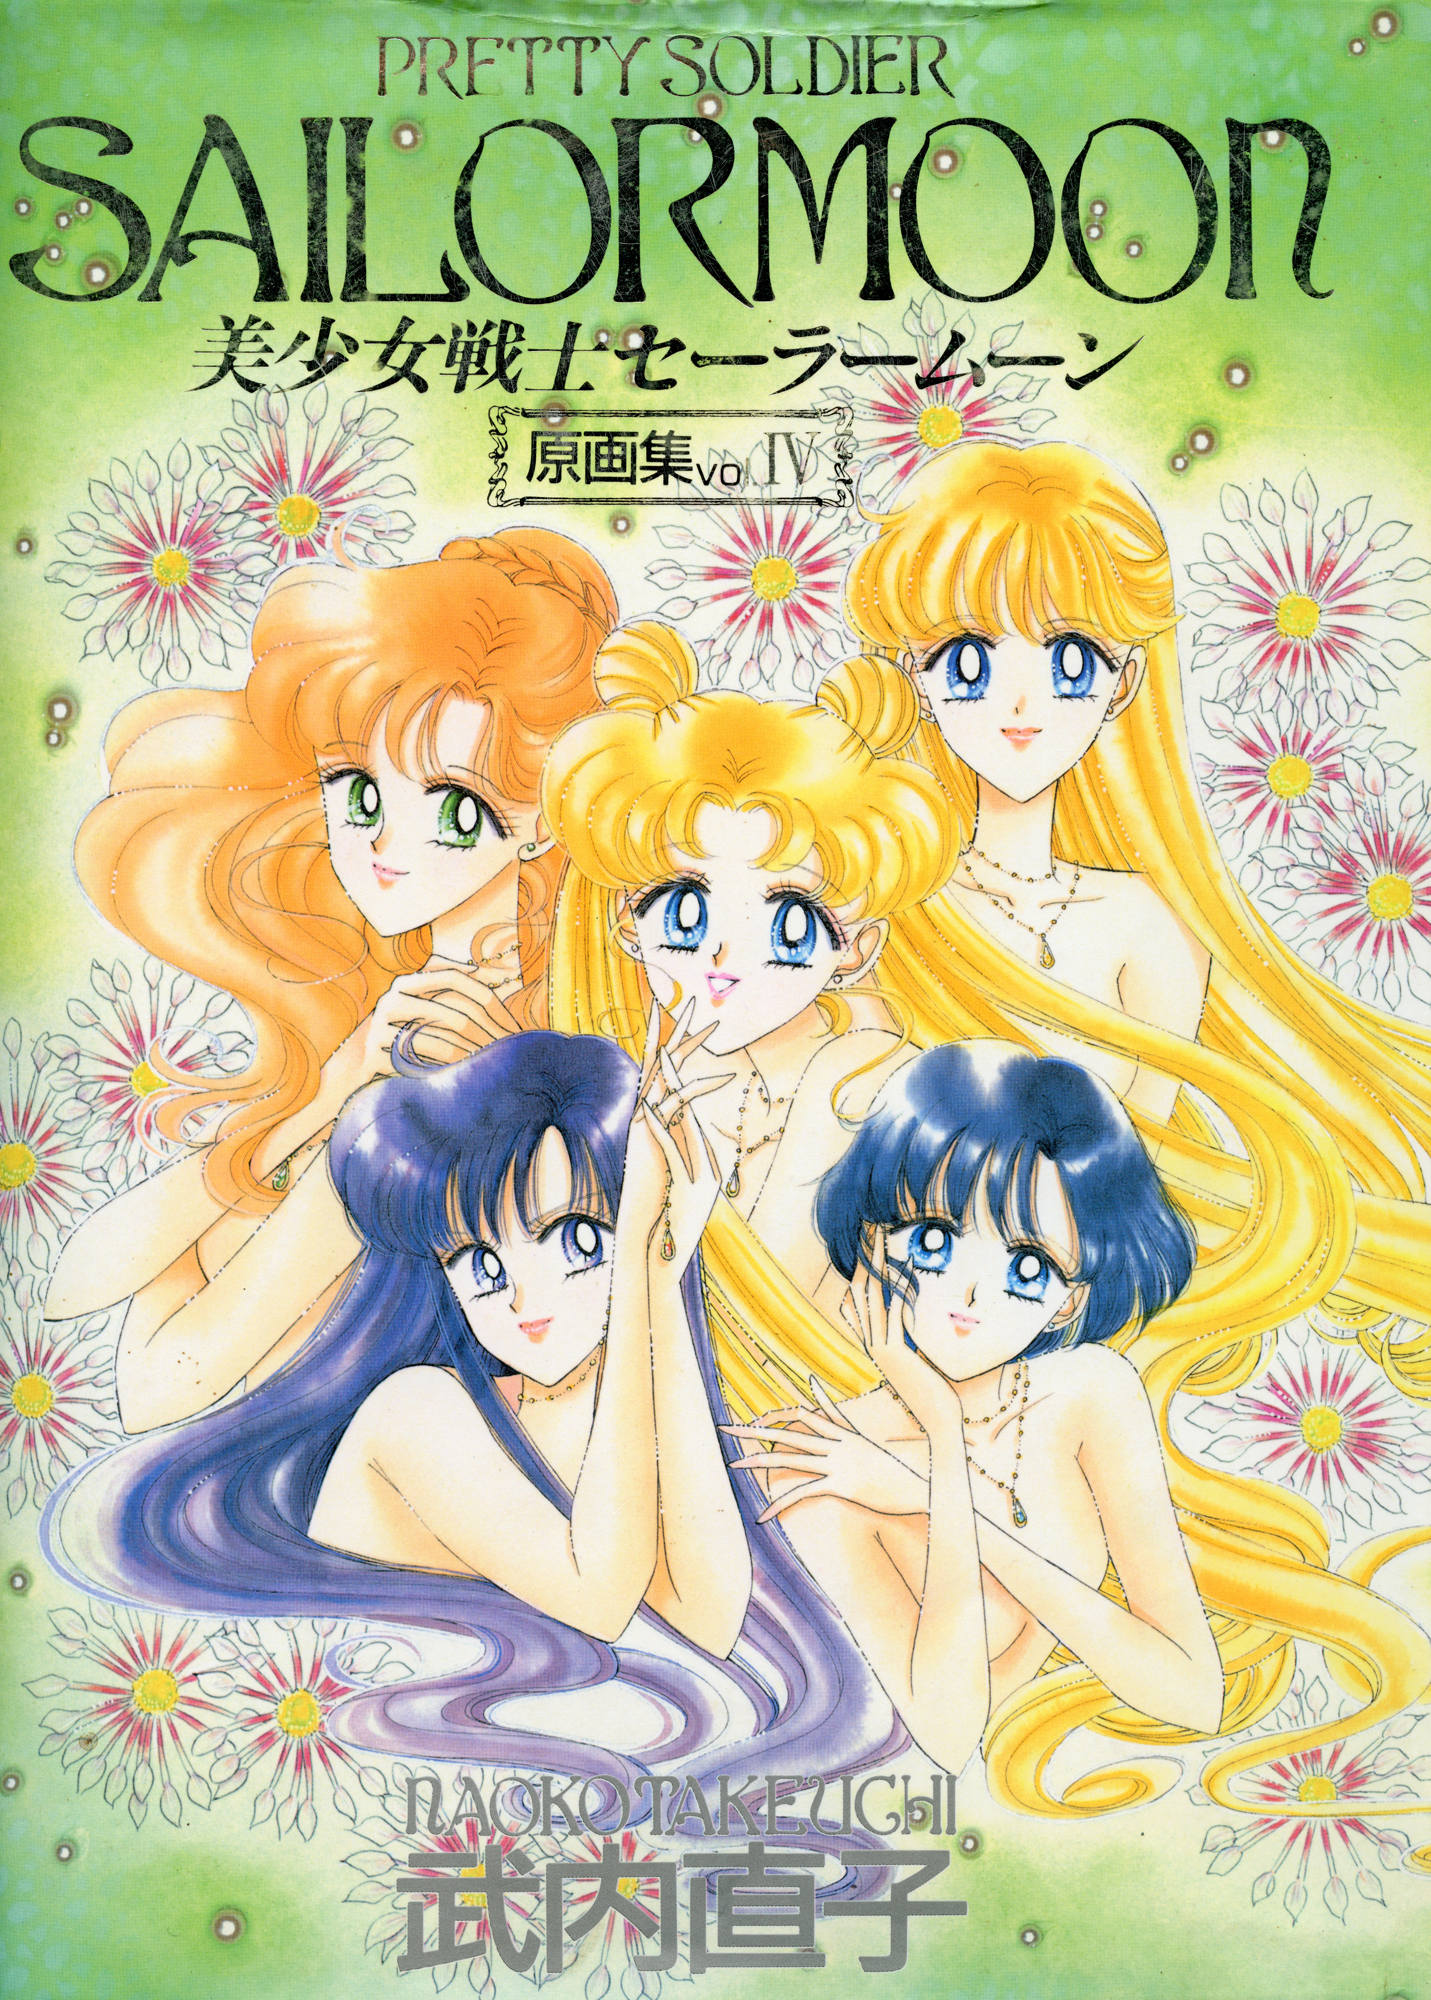 Sailor Moon Original Picture Collection Vol. IV